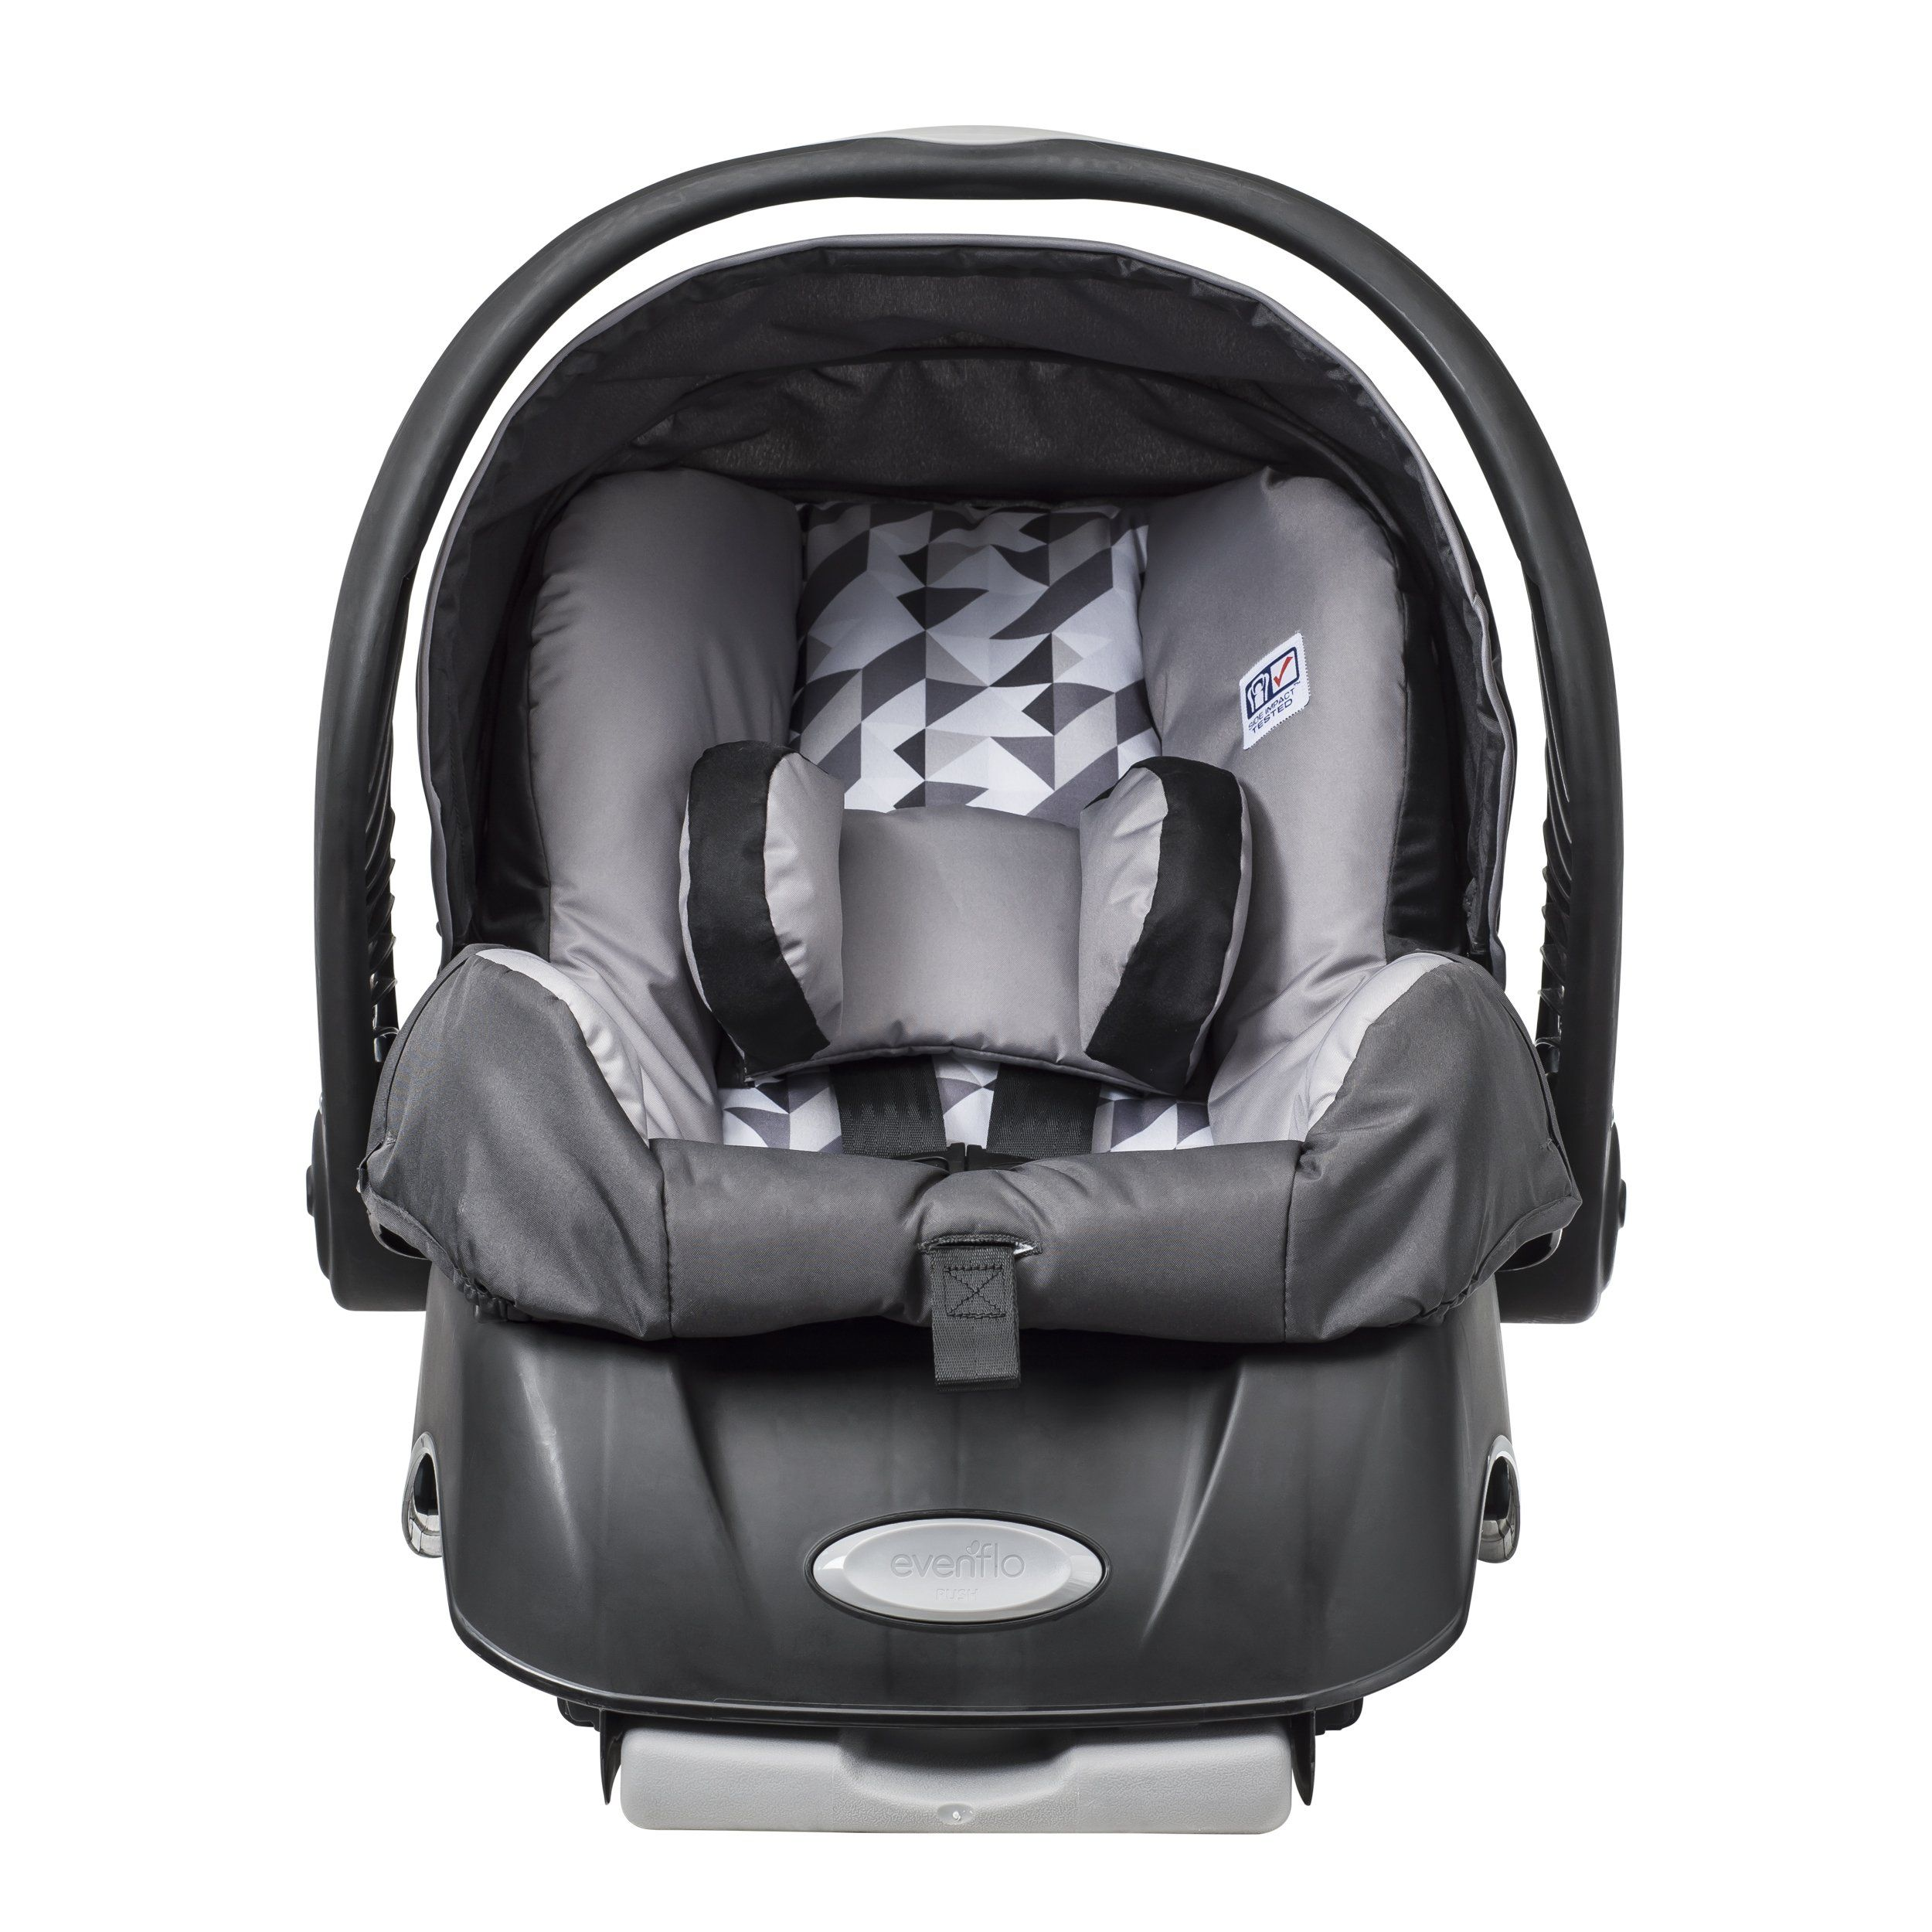 Evenflo Embrace LX Infant Car Seat Raleigh gt gt gt You can get